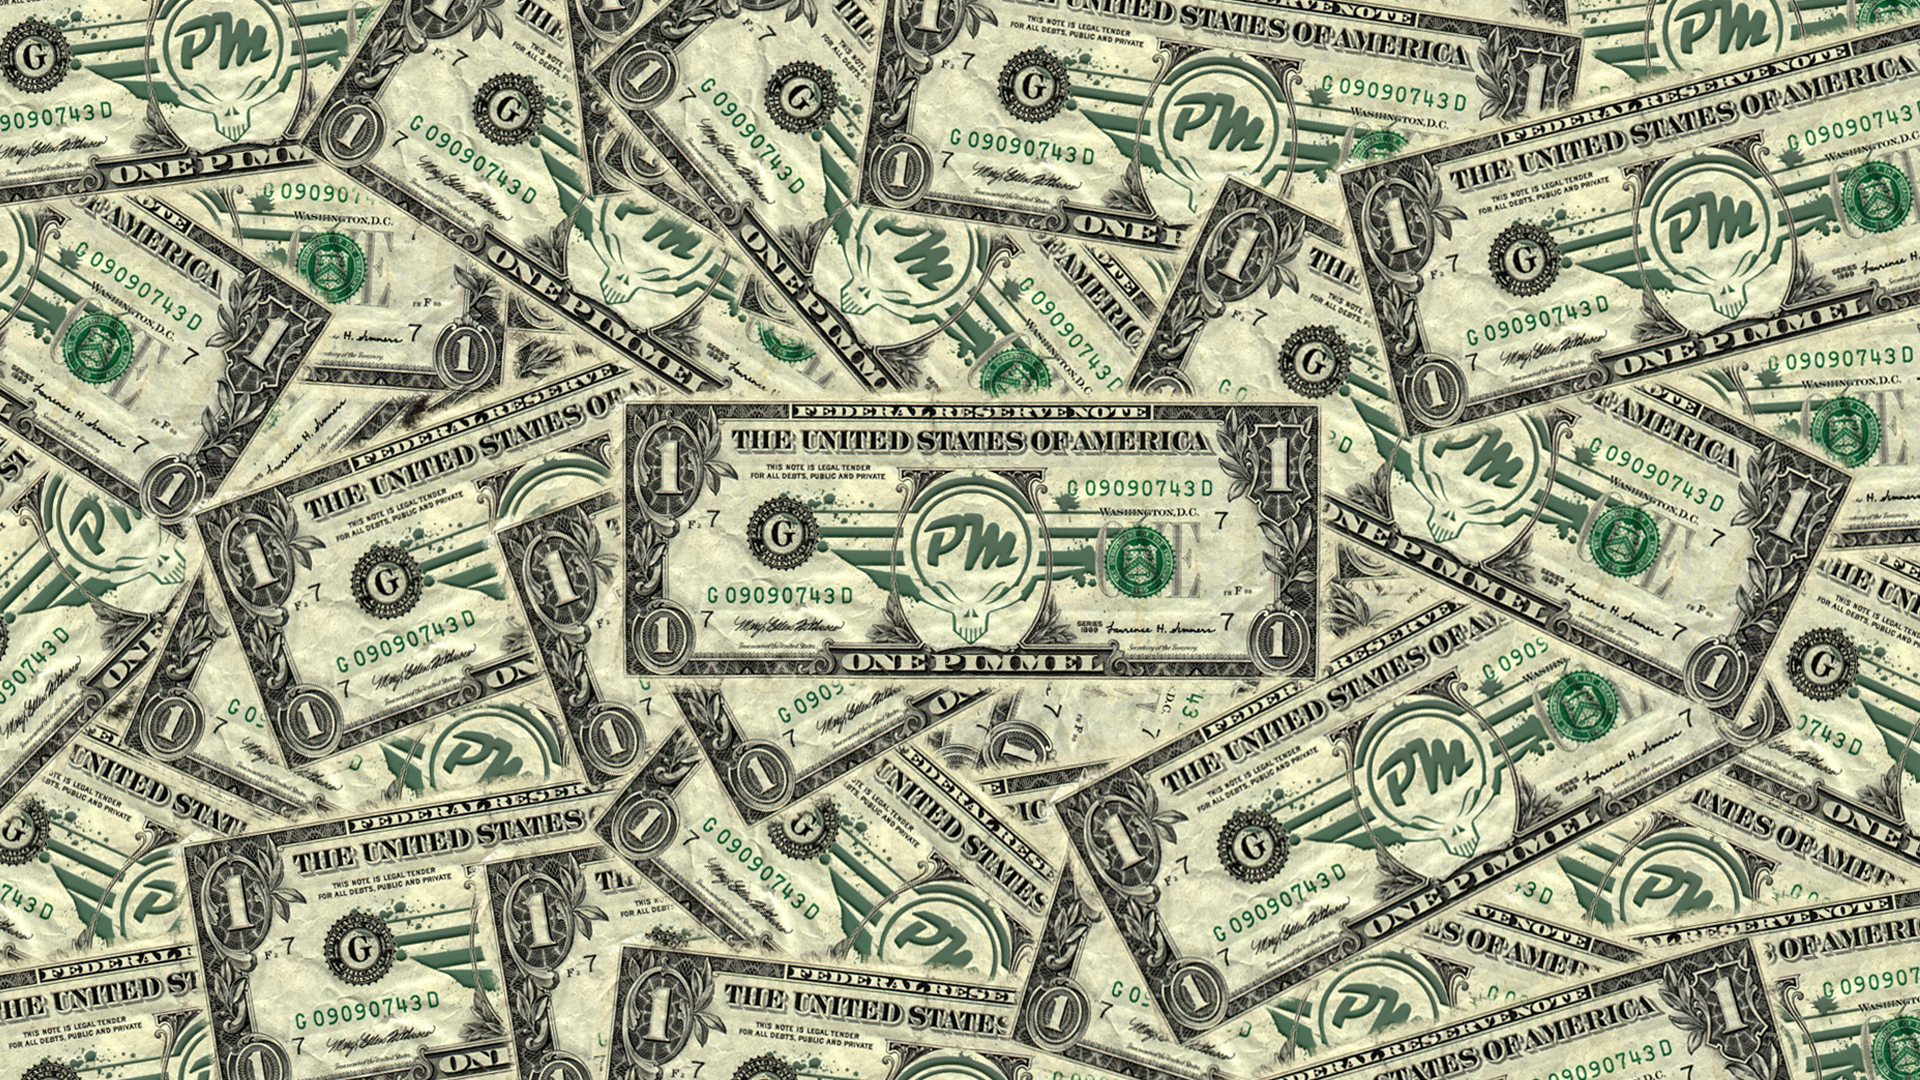 Dollar hd wallpaper background image 1920x1080 id 364412 wallpaper abyss - Money hd wallpapers 1080p ...